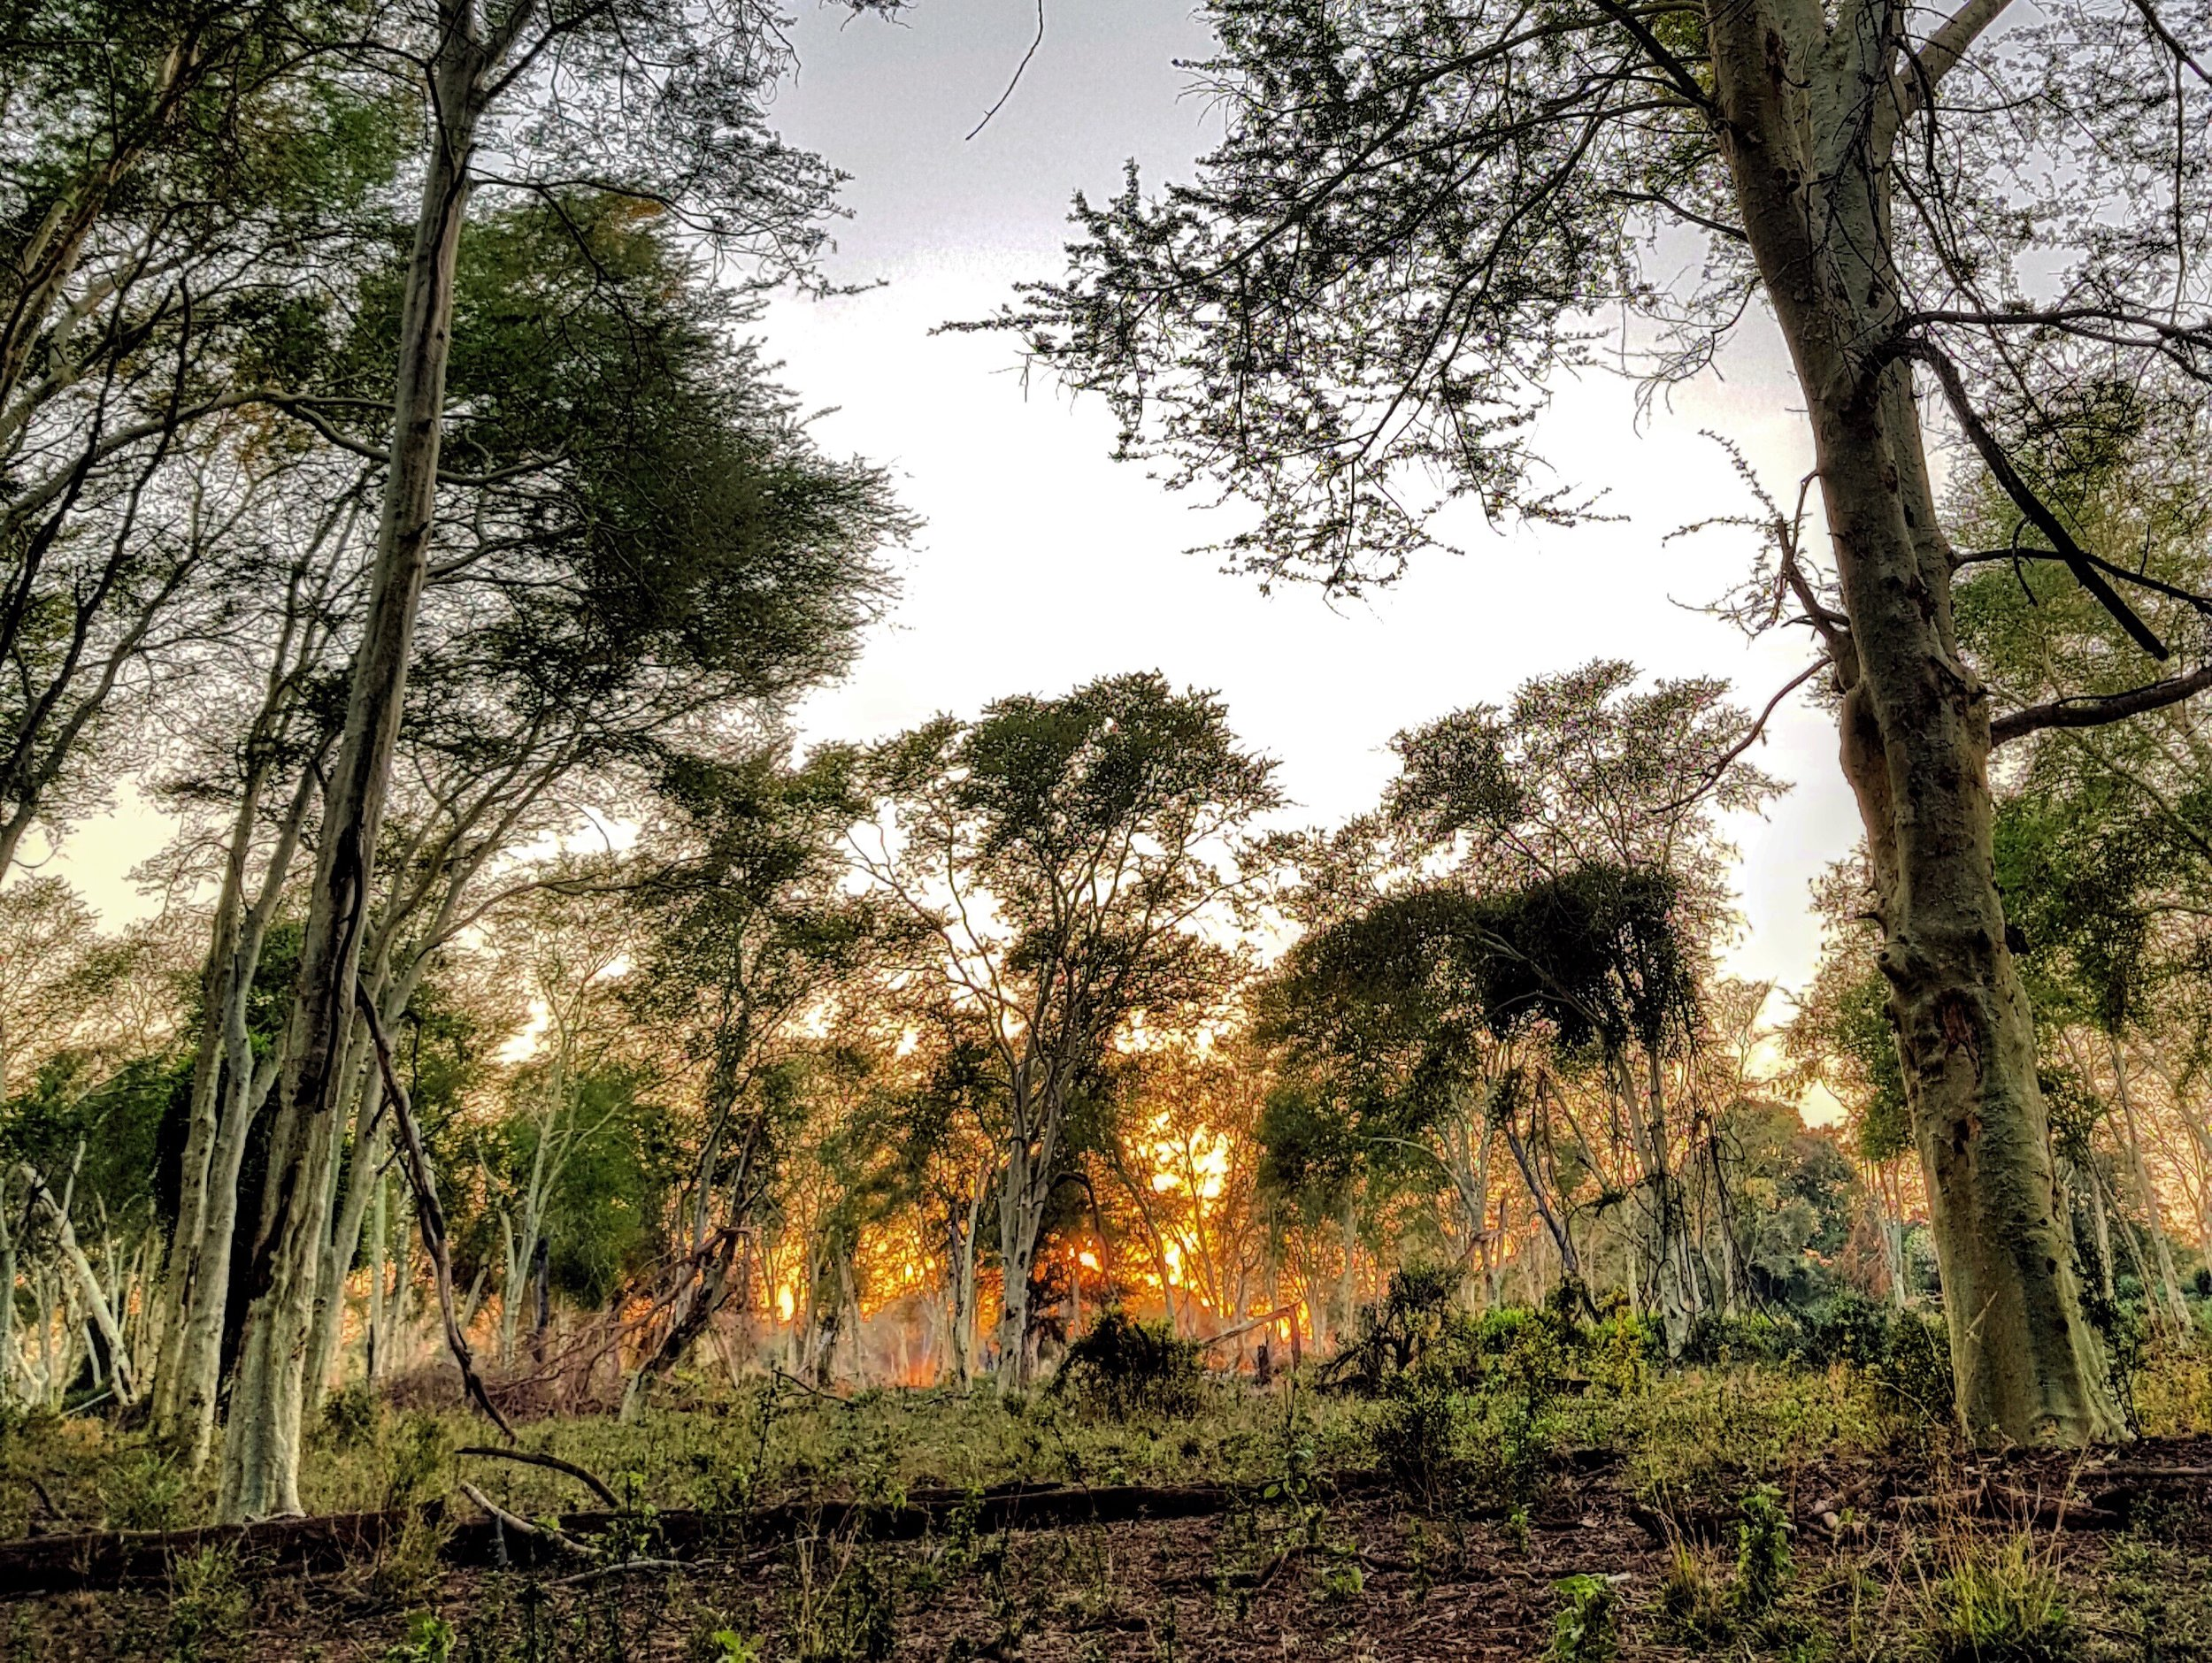 FEVER TREE FAIRY TALE: The magical green fever tree forest at sunrise. There is nothing like witnessing the morning light on these beautiful trees.